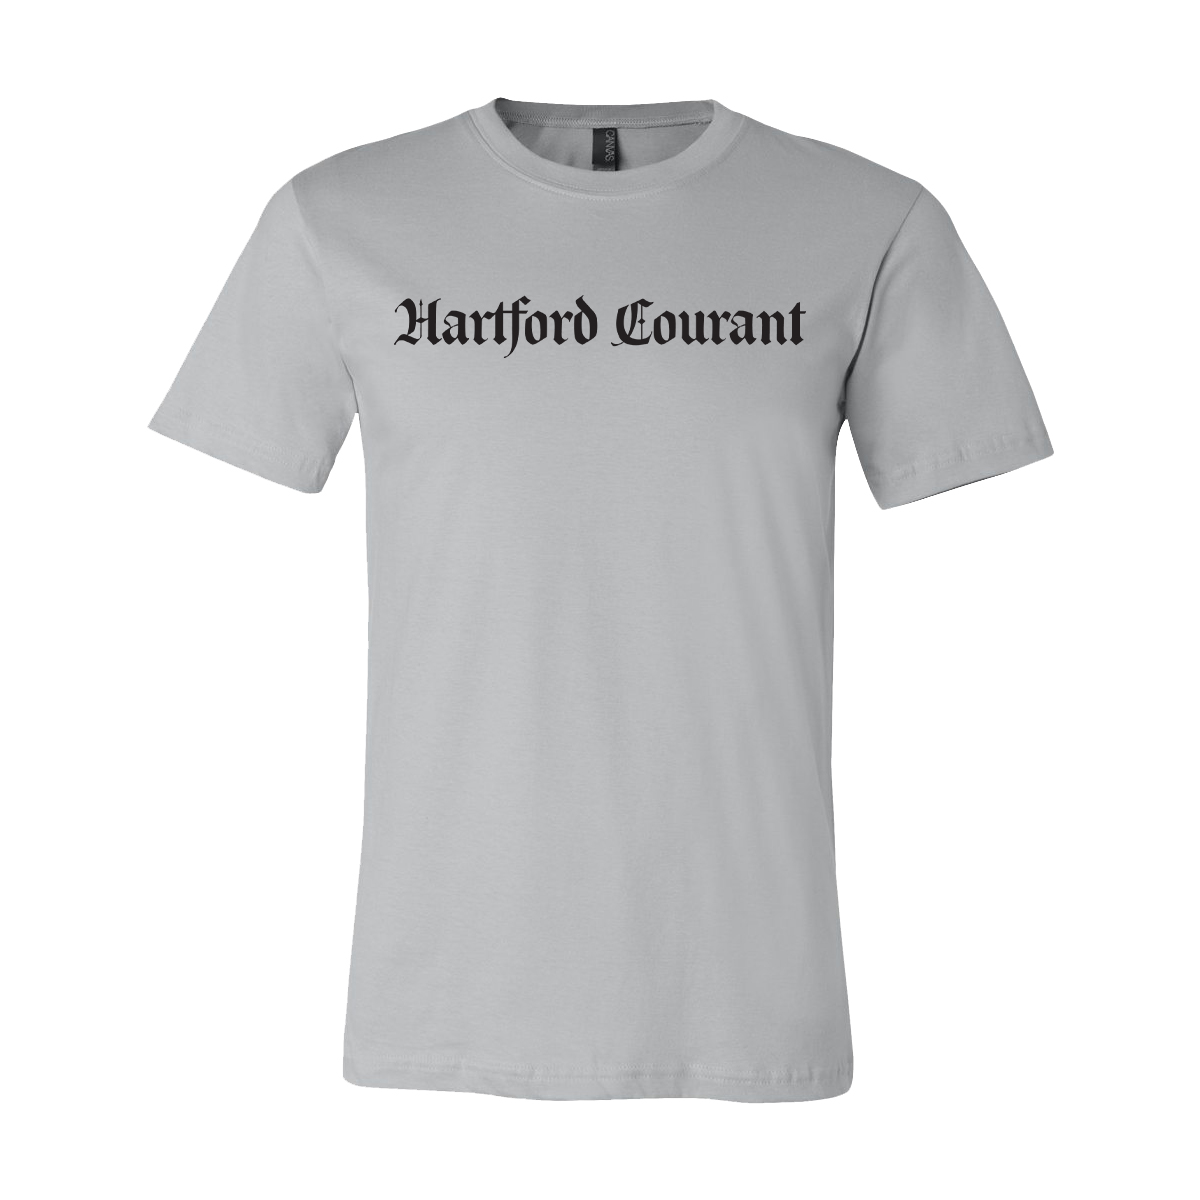 Hartford Courant Shirt